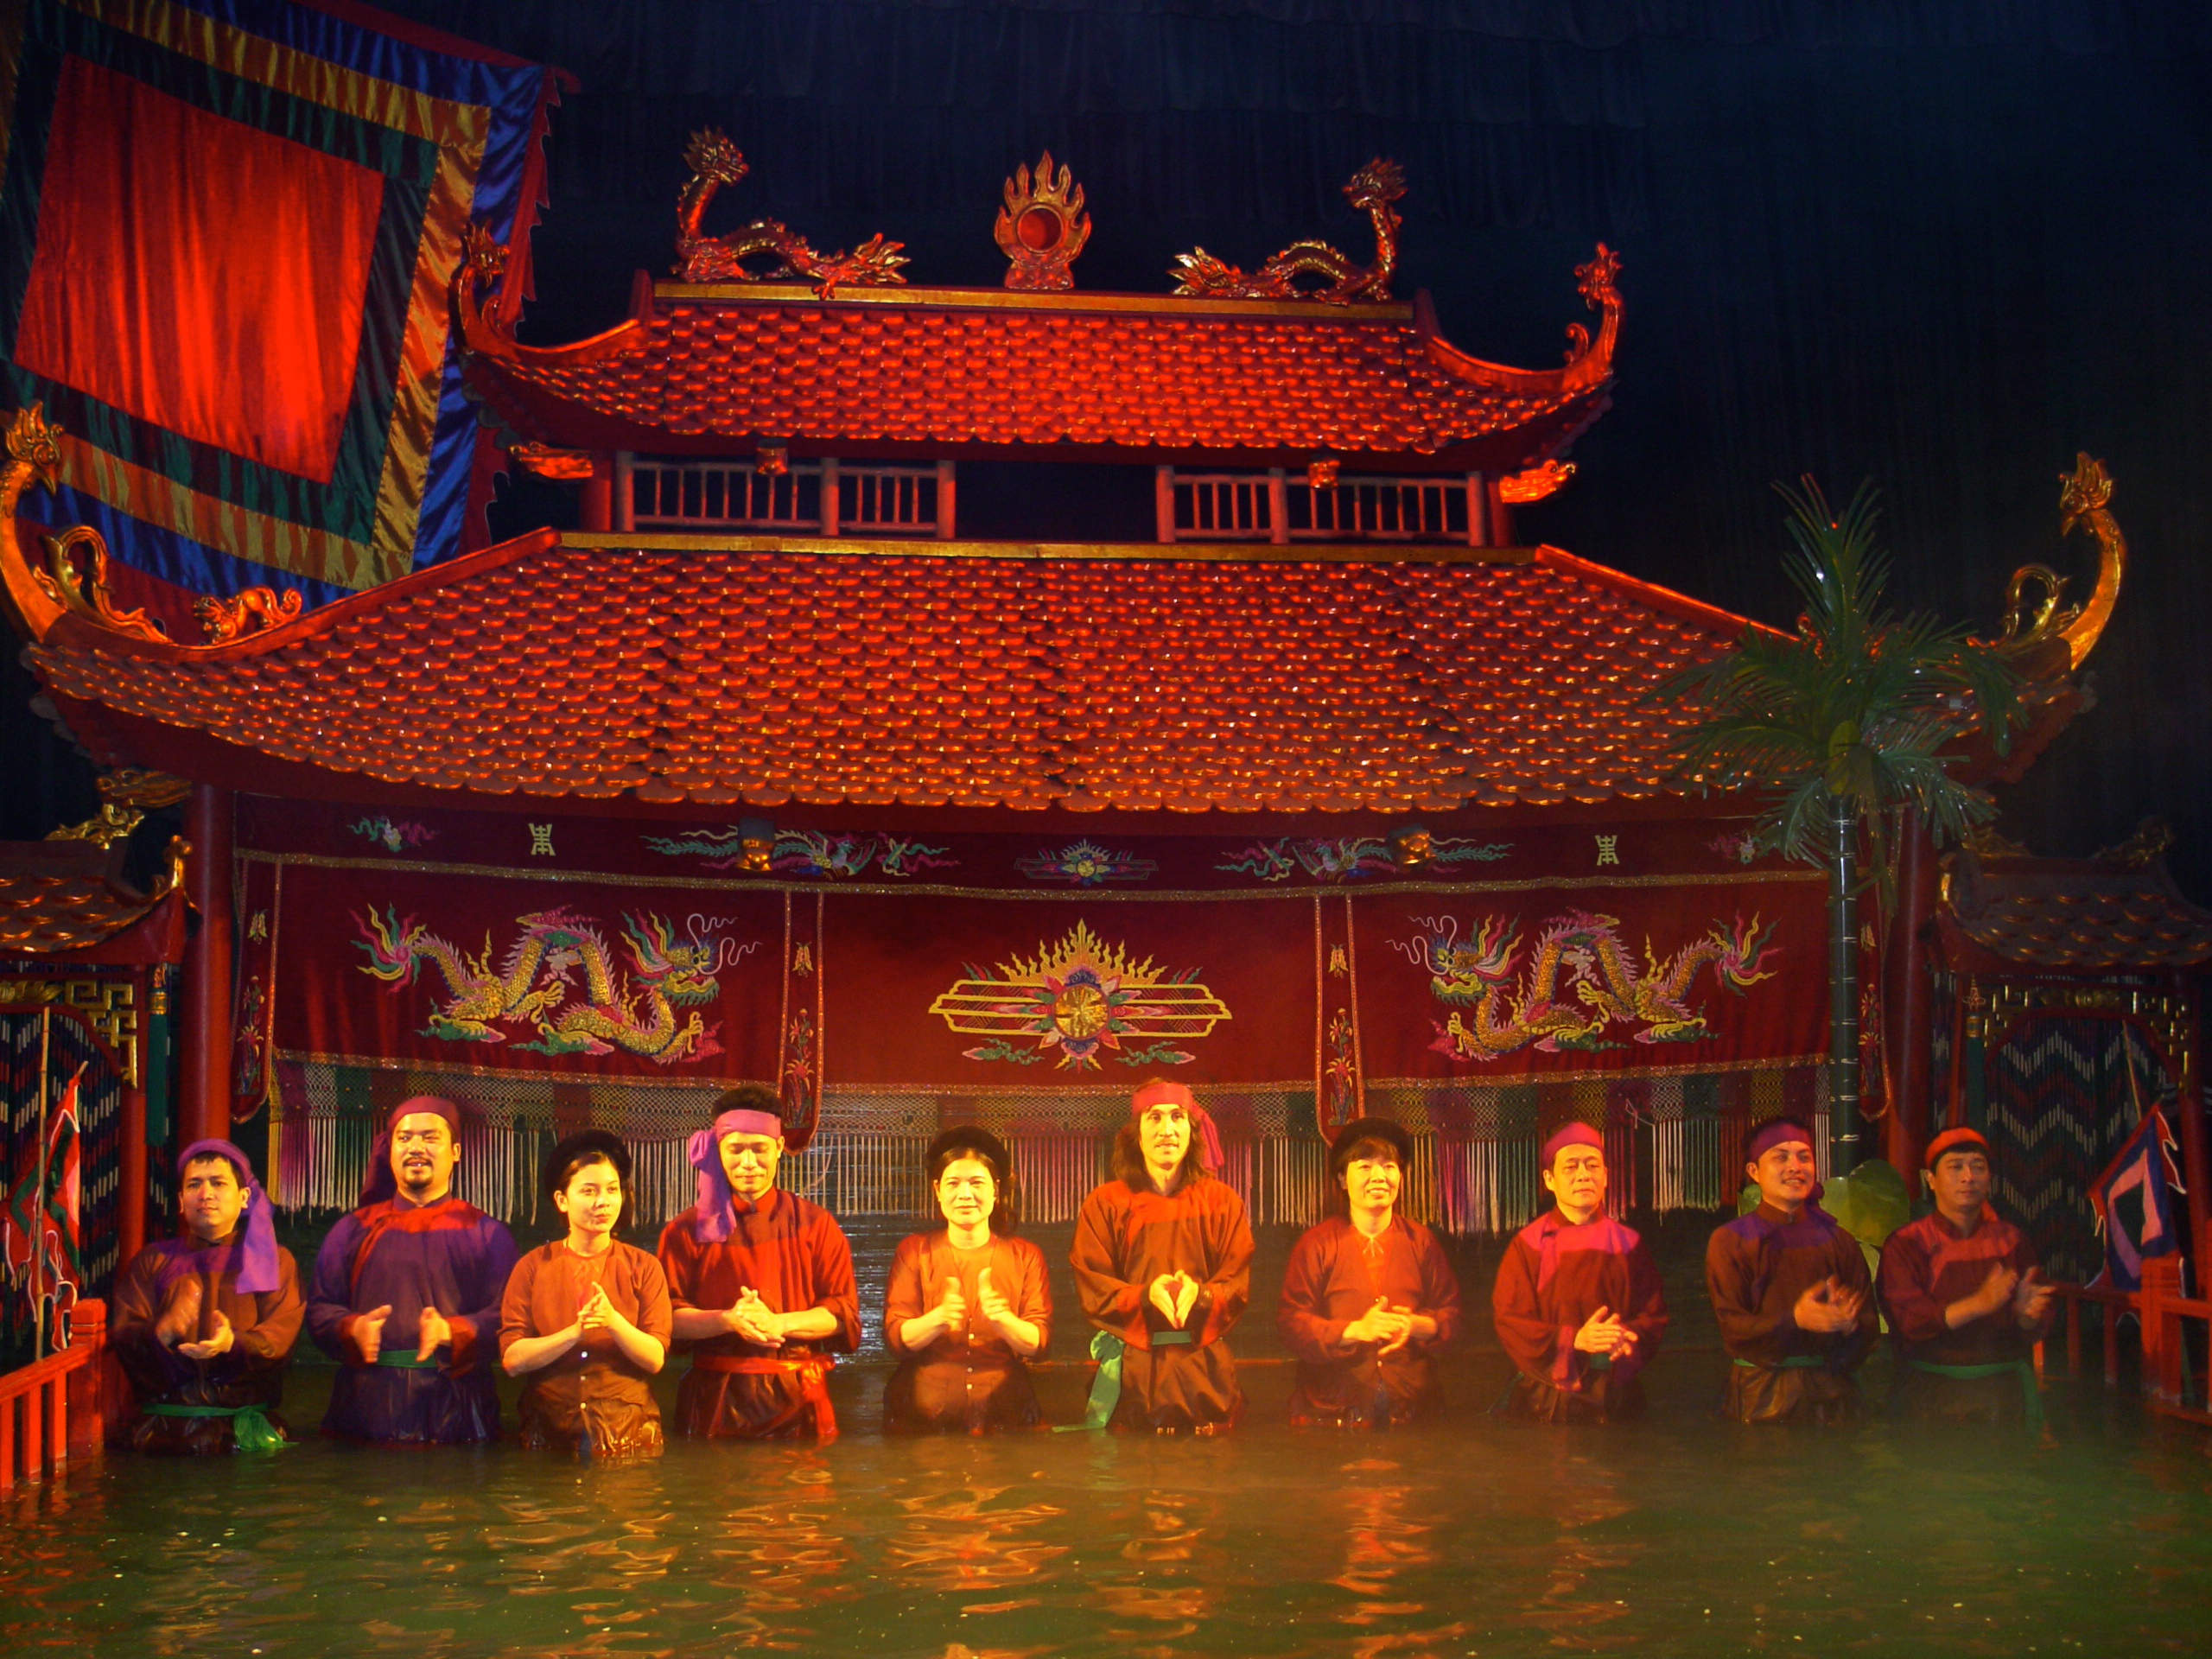 Performers-of-Water-Puppet-Show.jpg